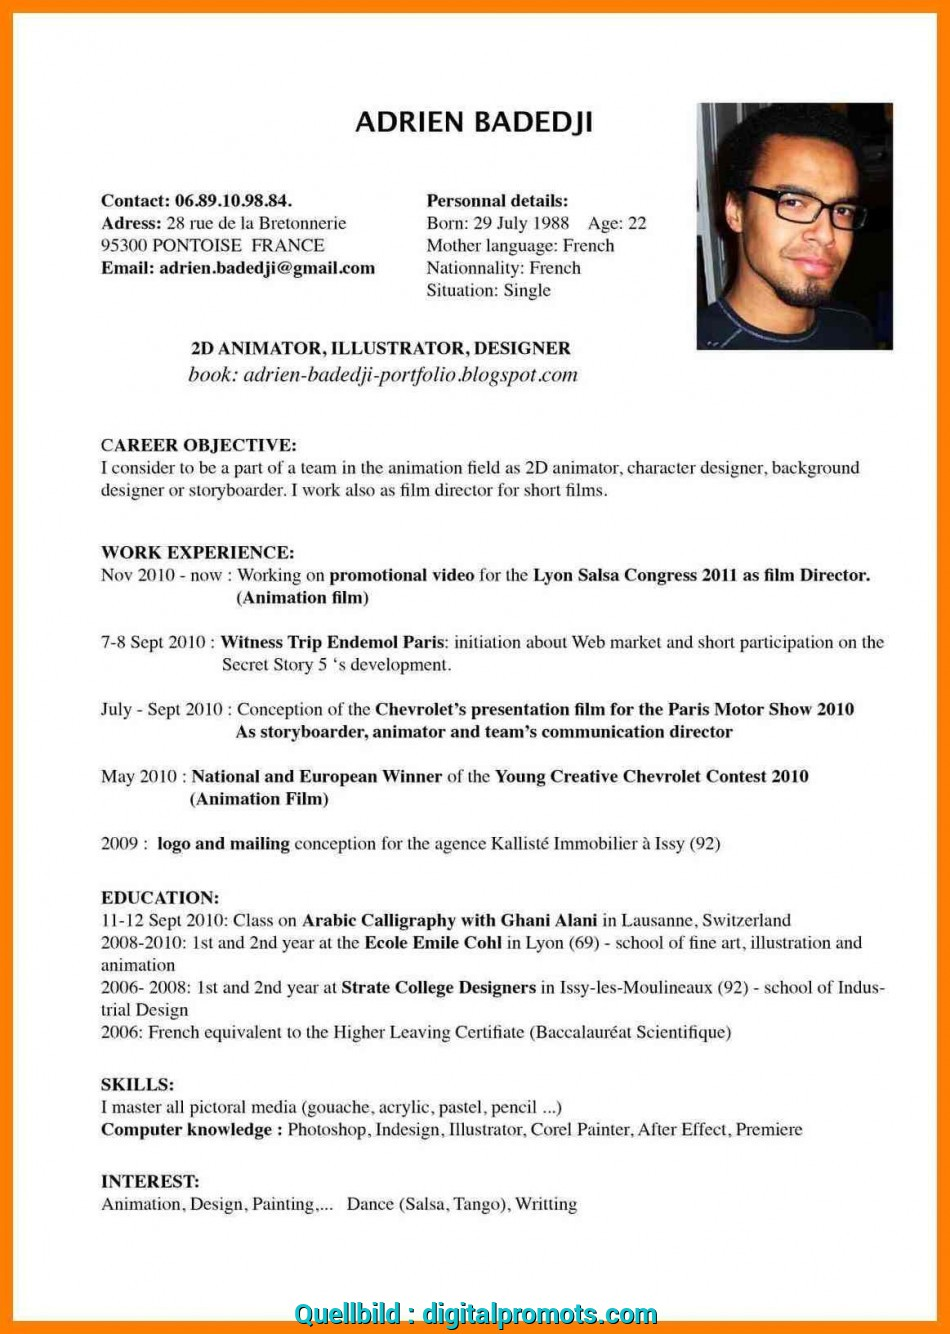 Vorhanden Example Resume English Cv Profile Examples, Students Sample Resume Free Resumes Stunning Example Of Resume In English 13 Resume English Example, Cv Example Student English